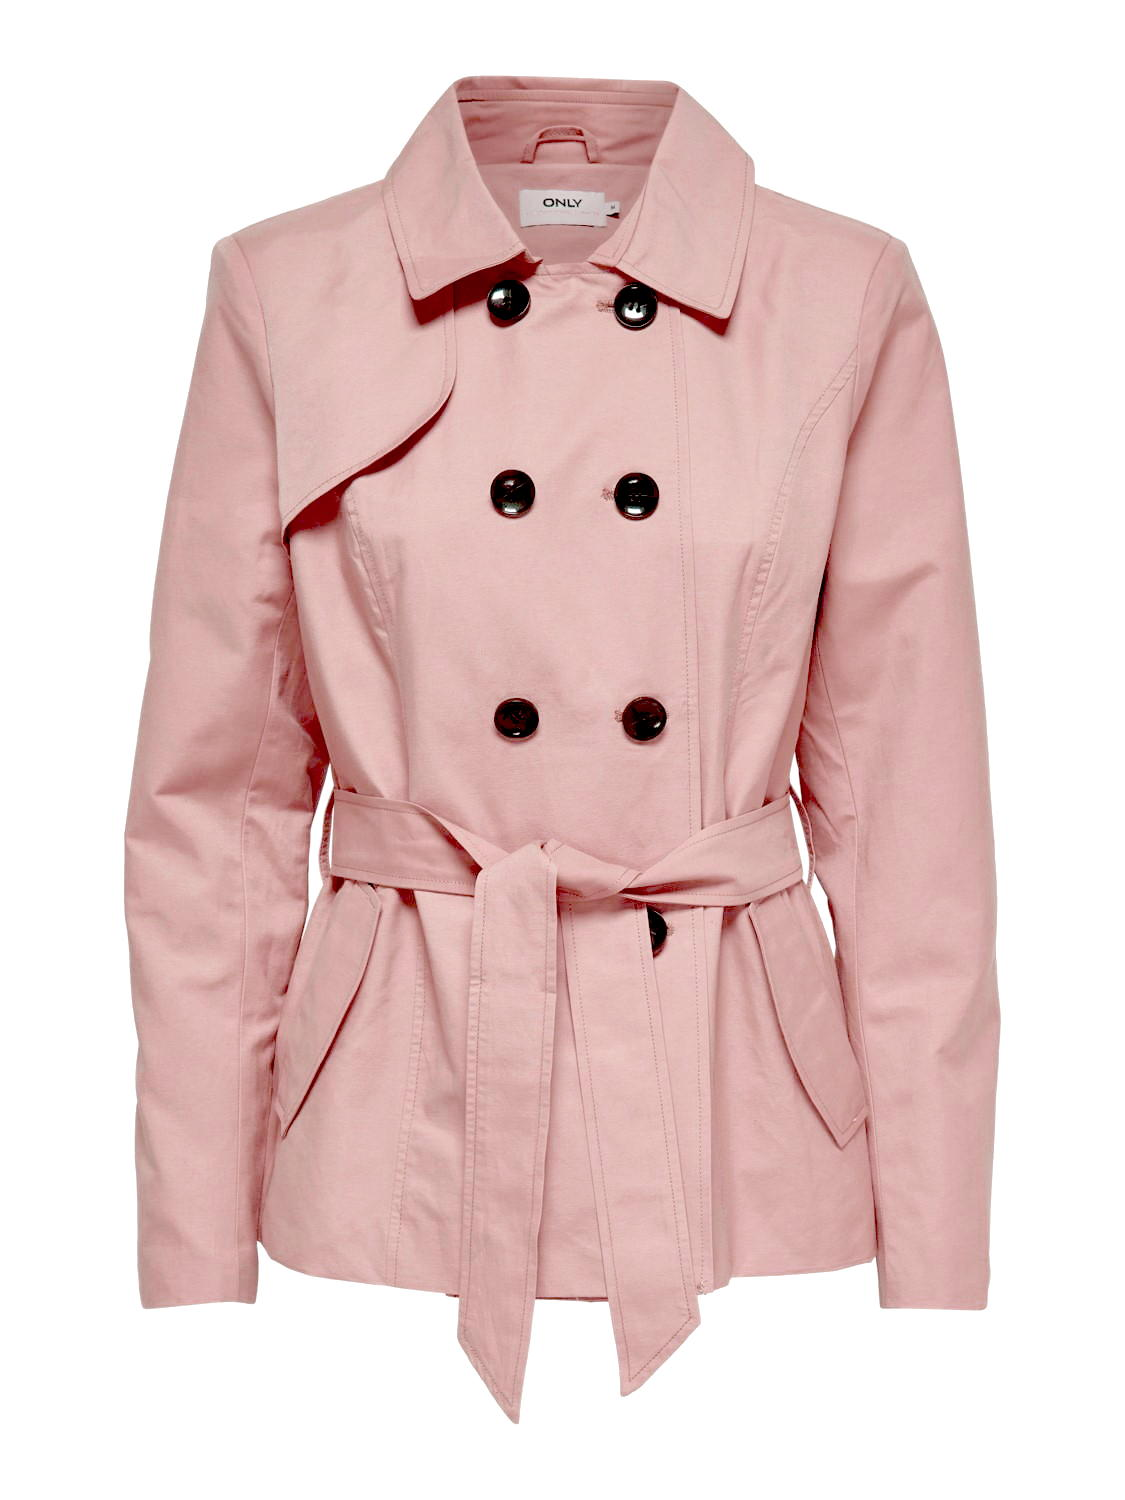 Only Damen Jacke Übergangsjacke Trenchcoat Kurzmantel Ashley Laura